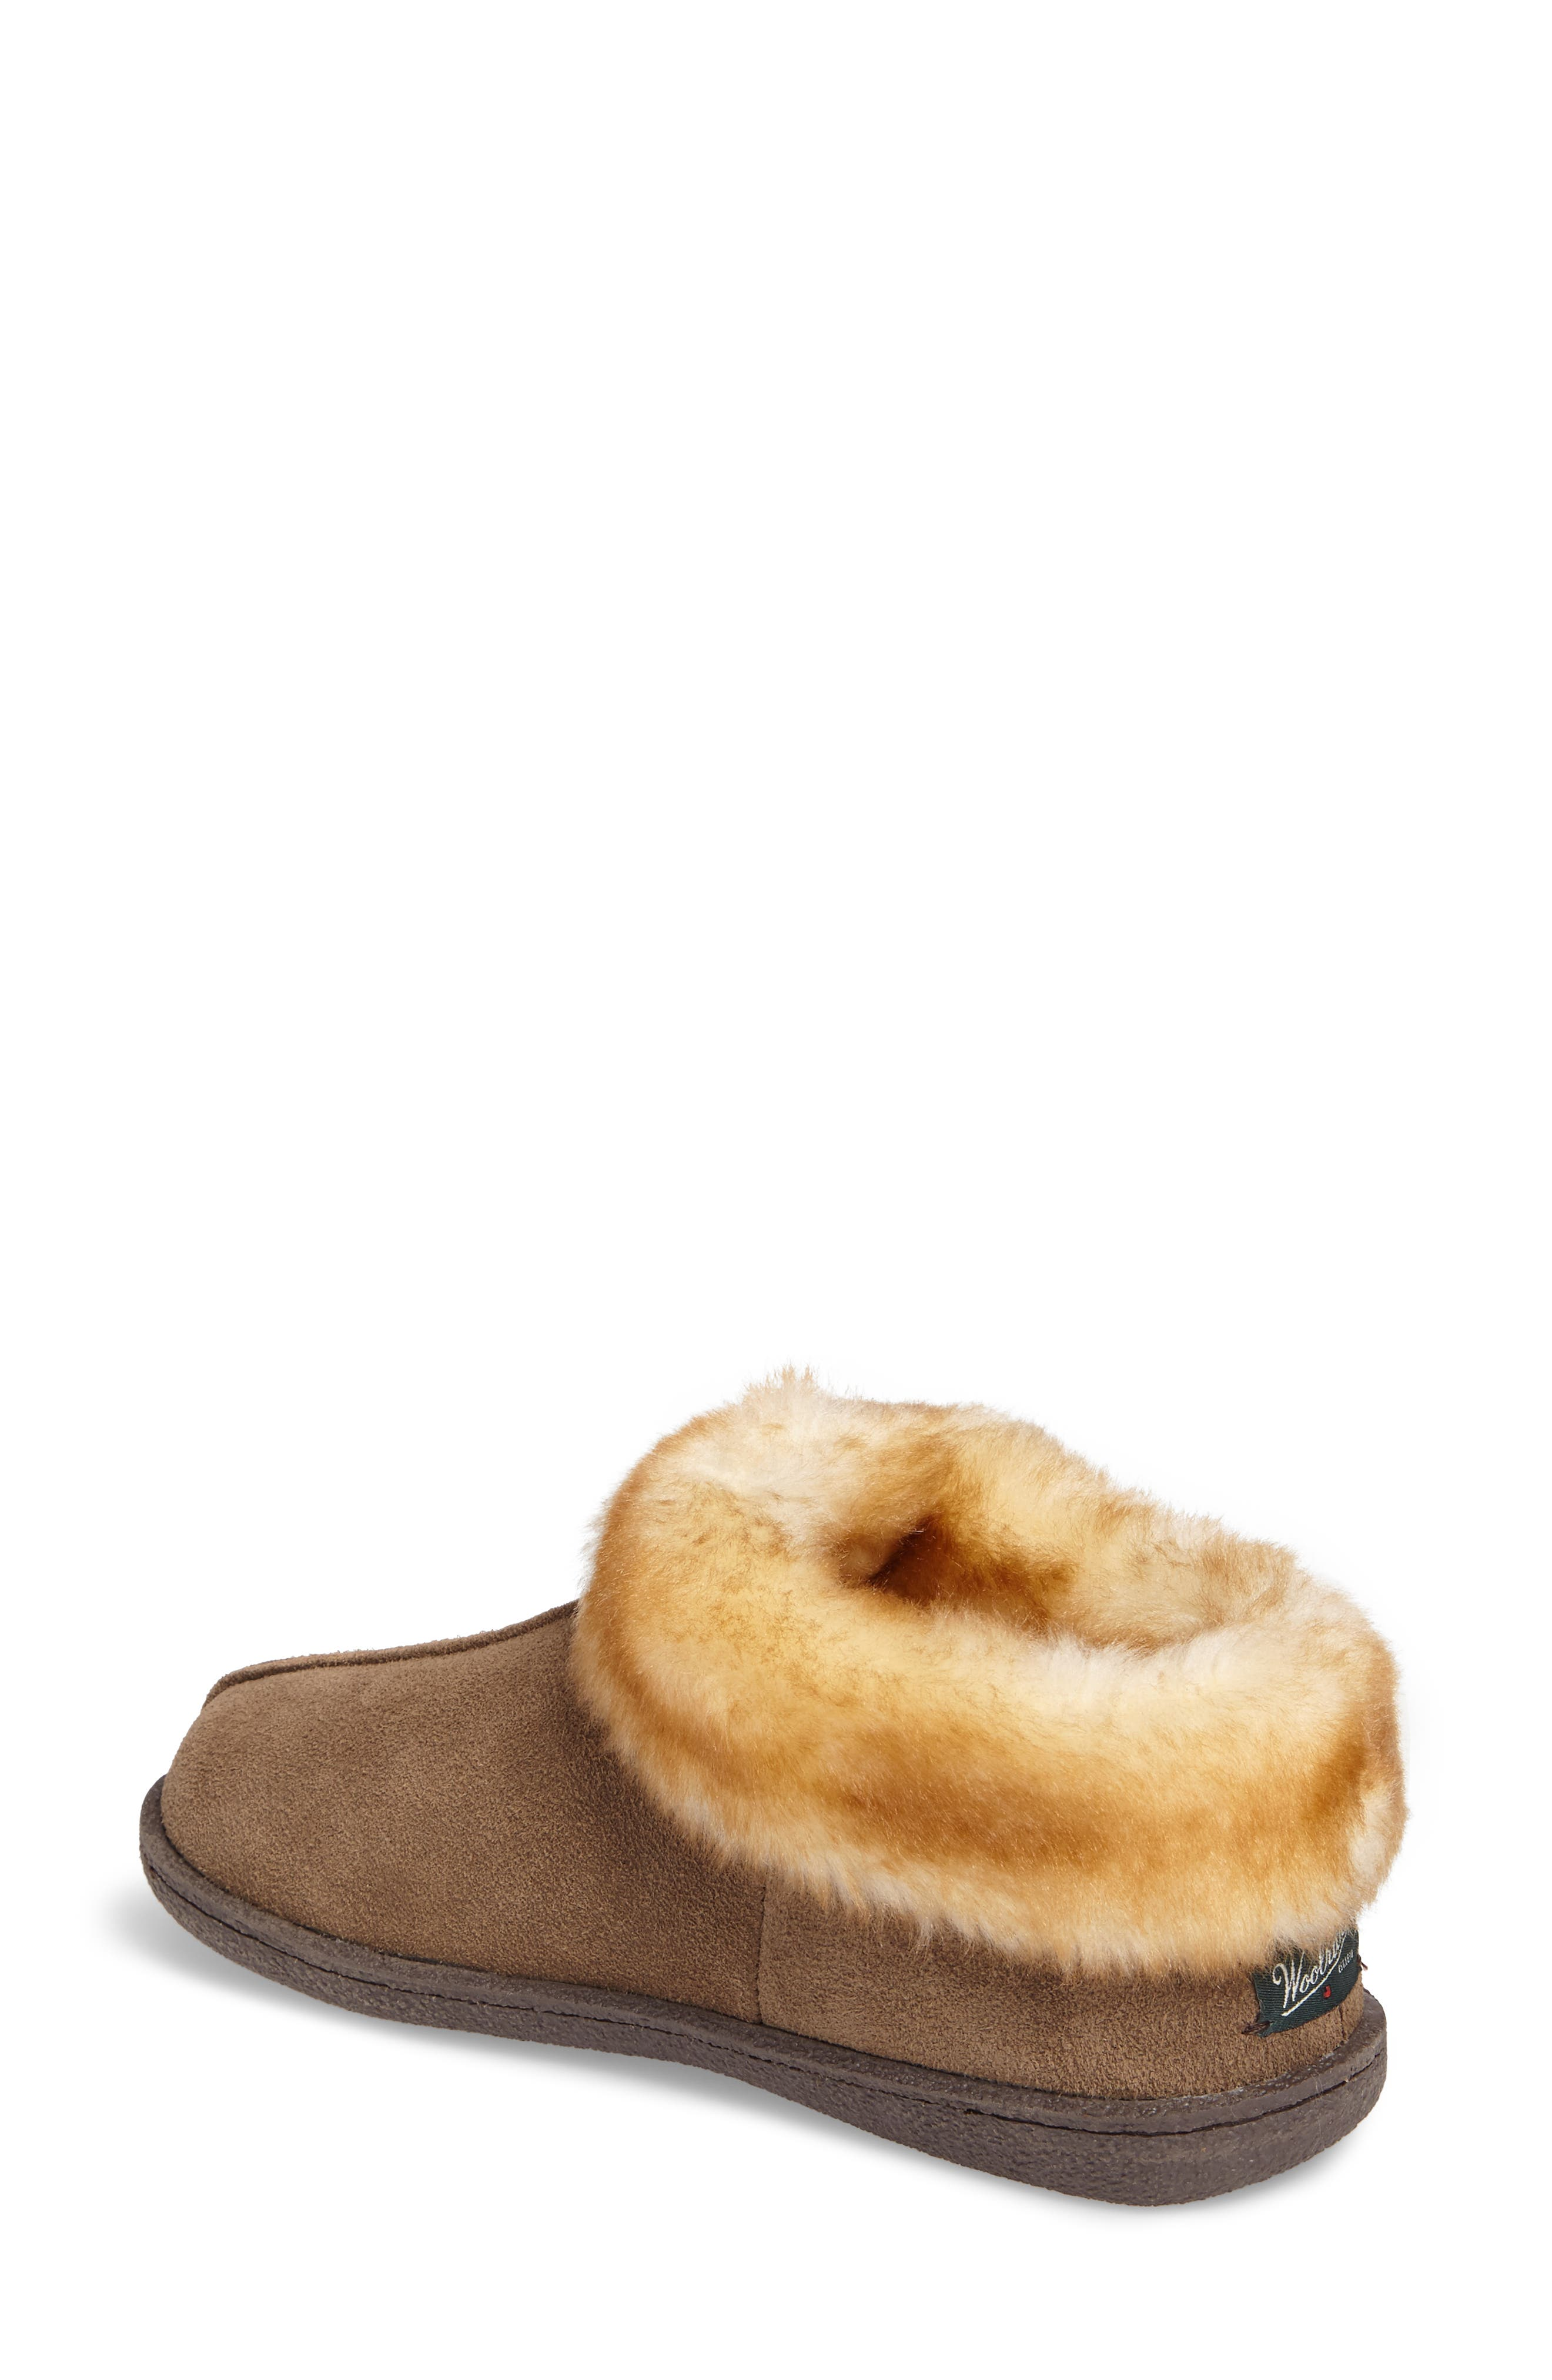 Autumn Ridge II Faux Fur Slipper Bootie,                             Alternate thumbnail 4, color,